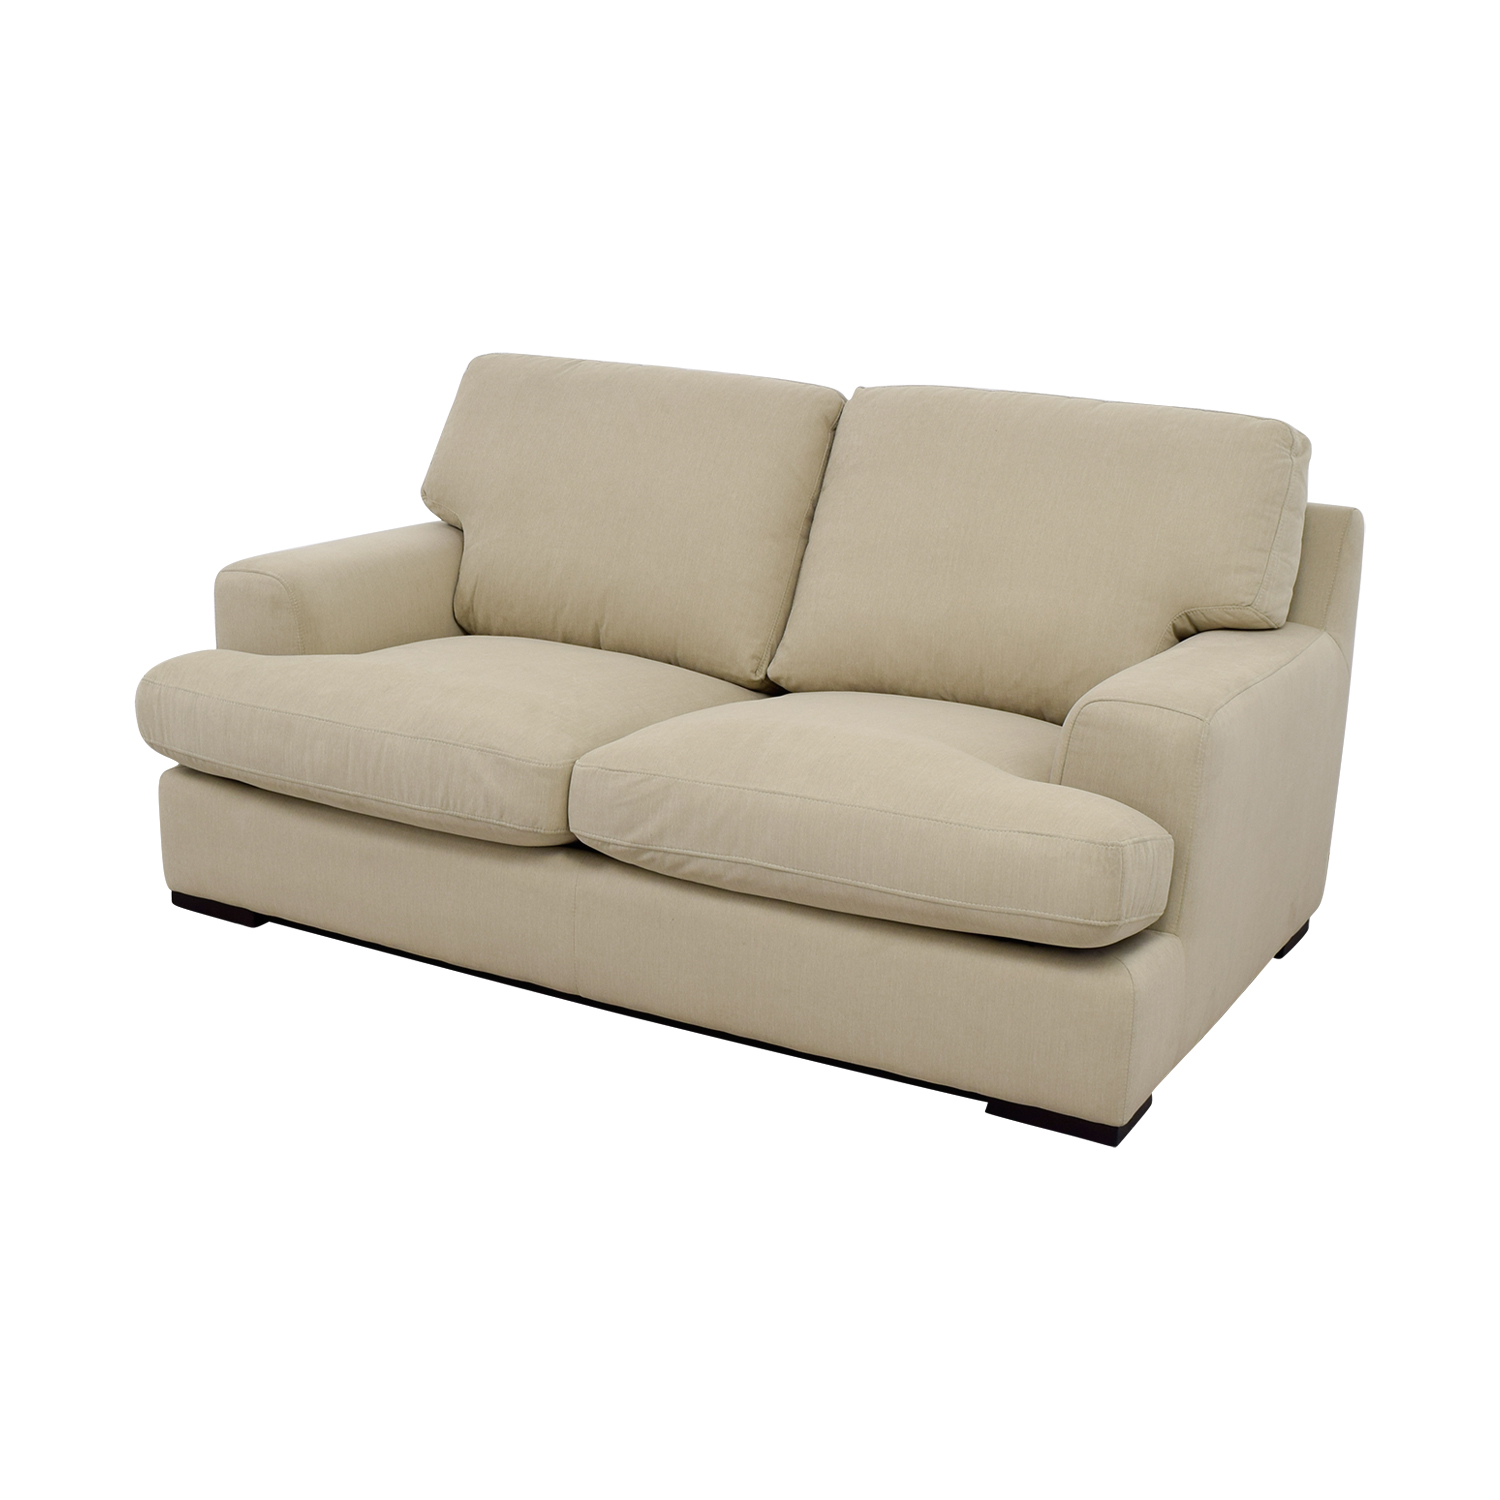 feather filled sofas second hand barrow sofascore 65 off stone and beam lauren down